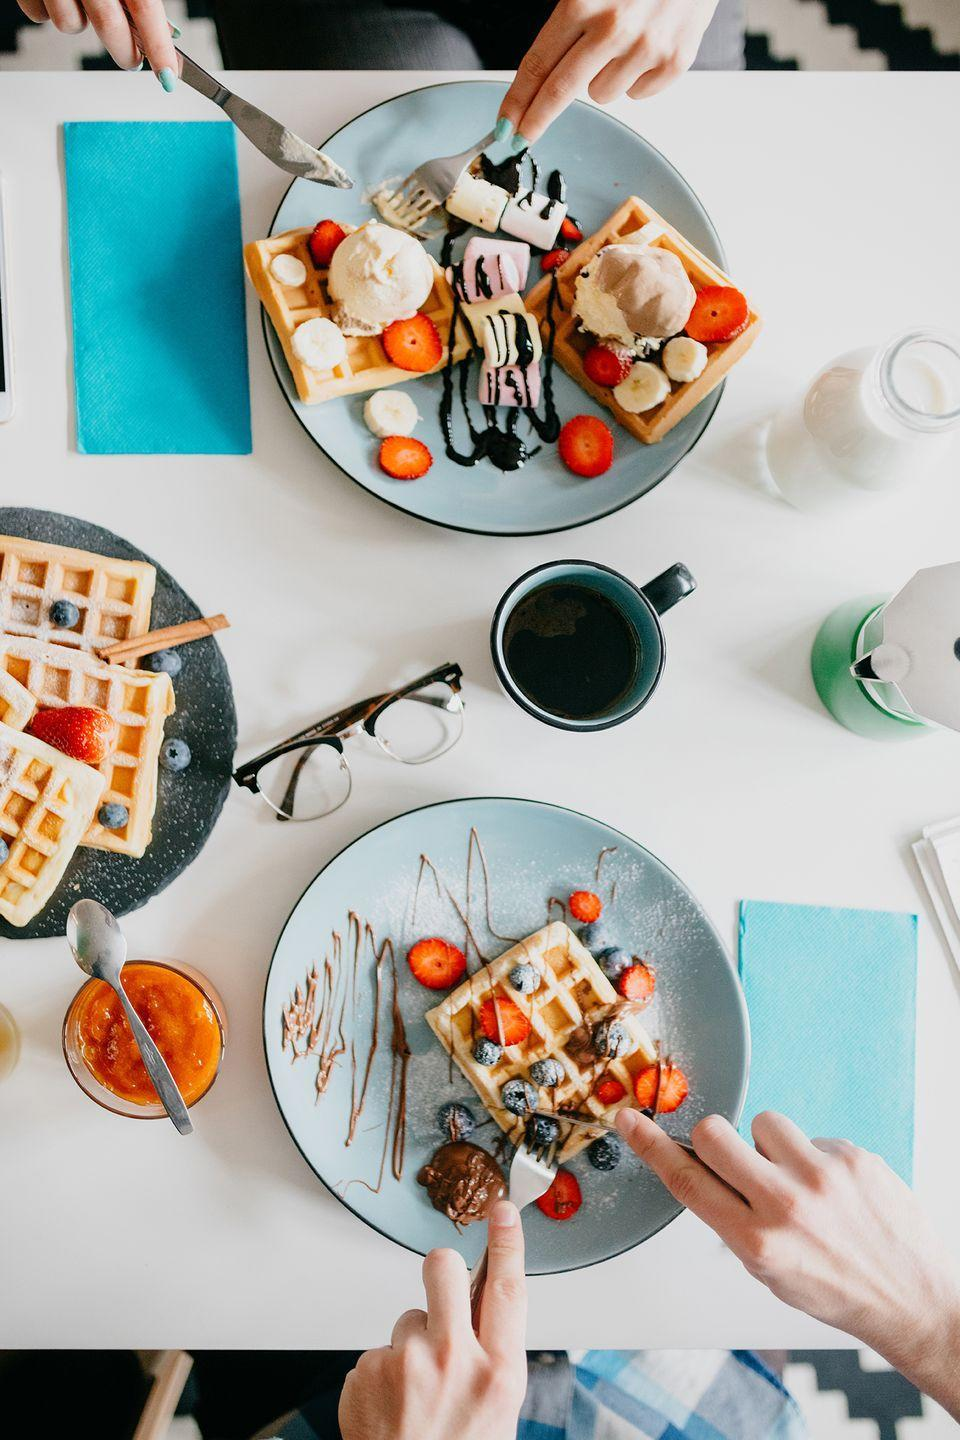 """<p>Go all out and whip up a few <a href=""""https://www.countryliving.com/food-drinks/g665/brunch-recipes/"""" rel=""""nofollow noopener"""" target=""""_blank"""" data-ylk=""""slk:yummy breakfast dishes"""" class=""""link rapid-noclick-resp"""">yummy breakfast dishes</a> at home while you sip on <a href=""""https://www.countryliving.com/food-drinks/g3073/mimosa-recipe/"""" rel=""""nofollow noopener"""" target=""""_blank"""" data-ylk=""""slk:homemade mimosas"""" class=""""link rapid-noclick-resp"""">homemade mimosas</a>. </p>"""